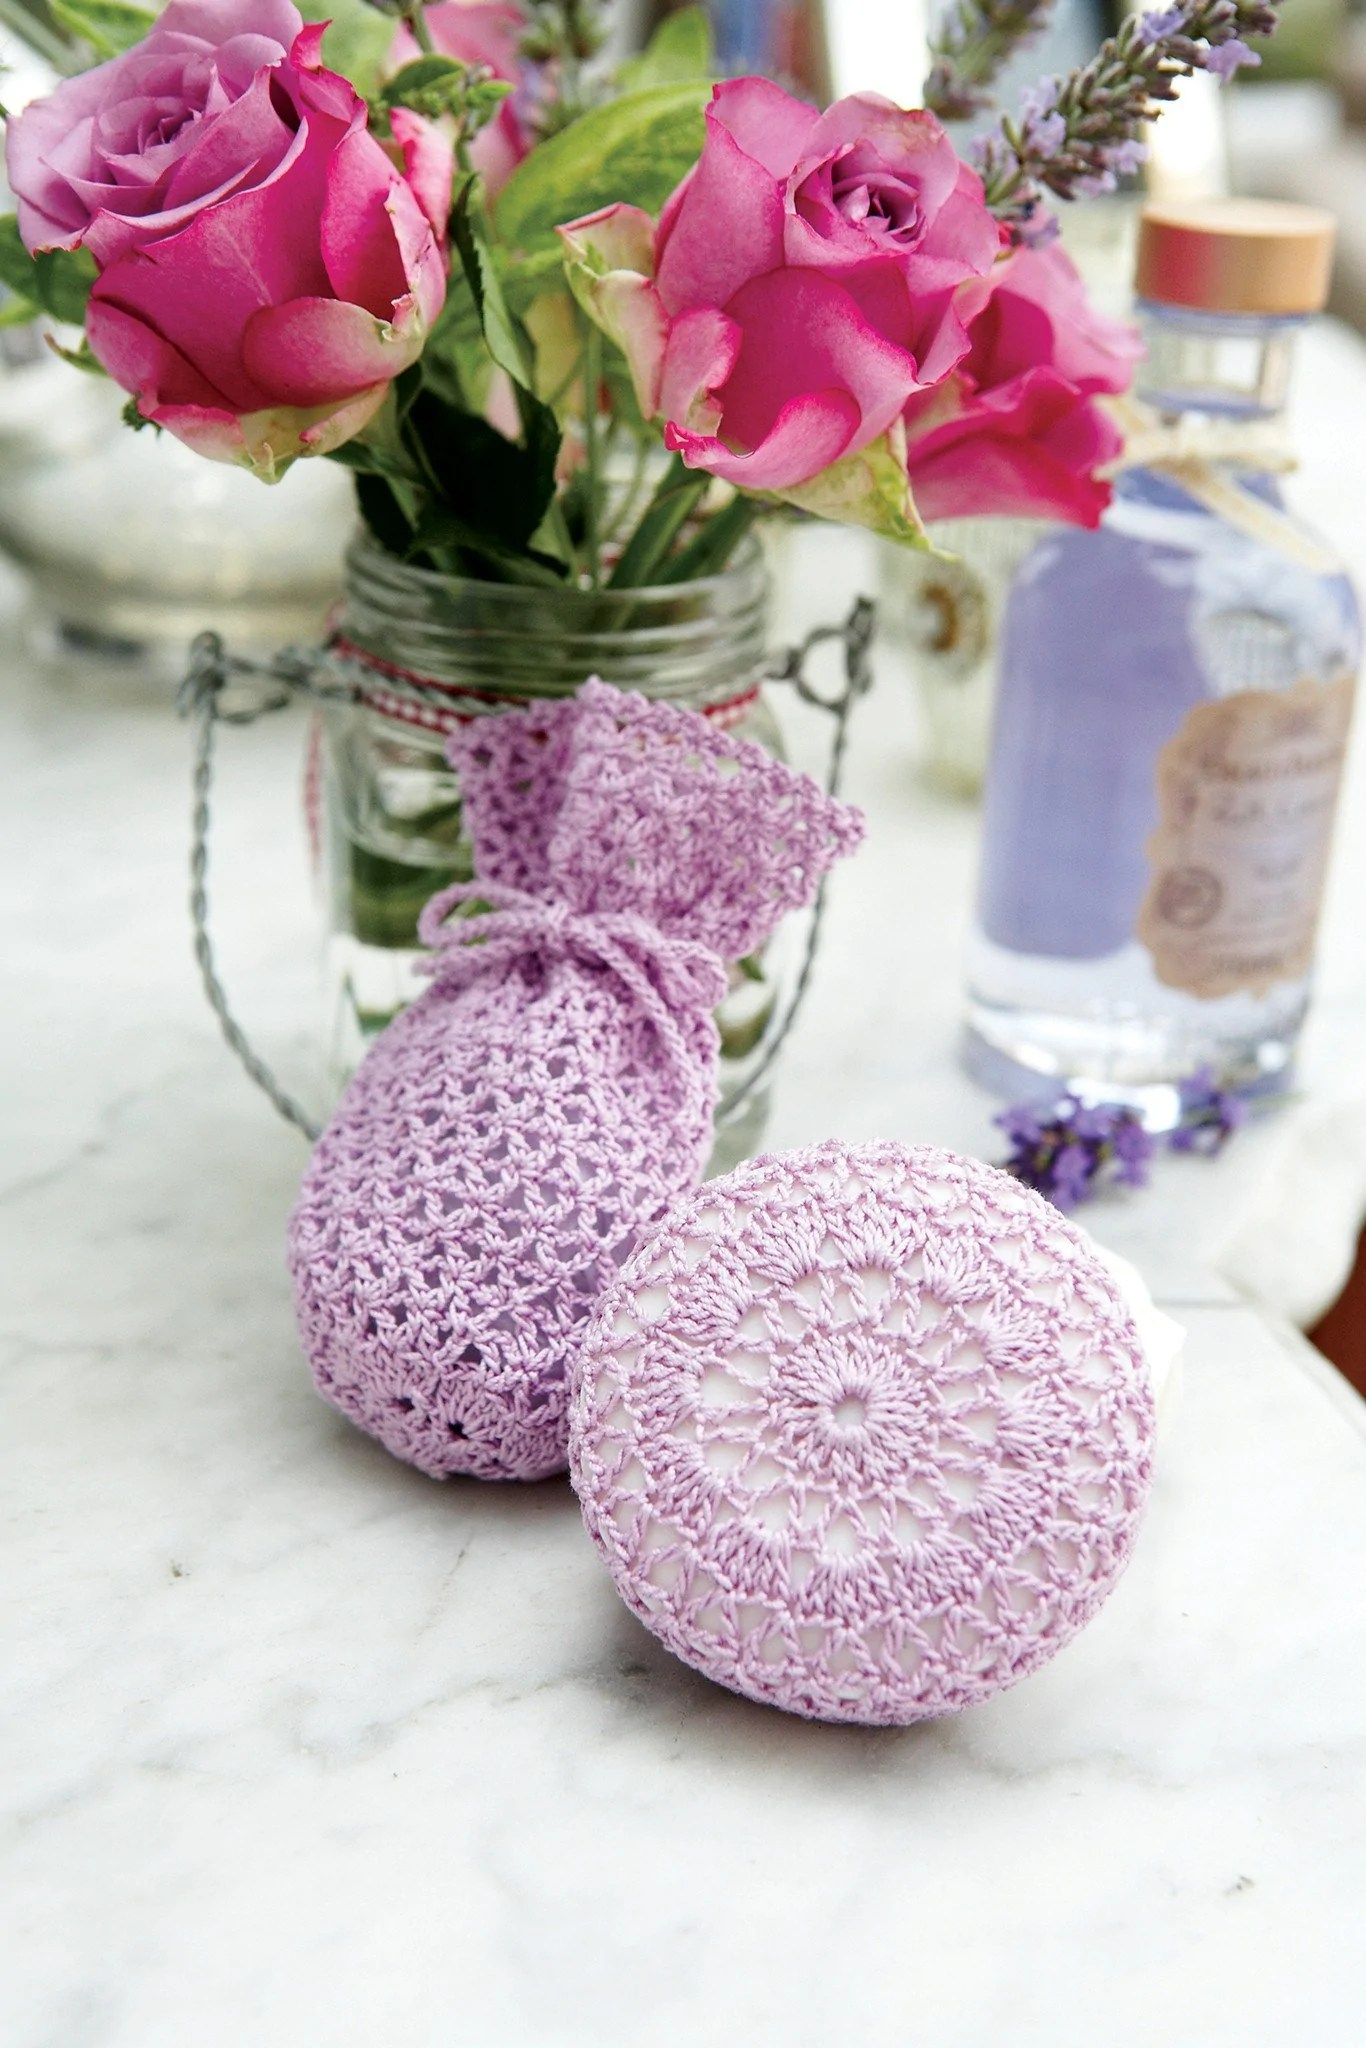 20 Crochet Soap Cover Pattern Pictures And Ideas On Meta Networks